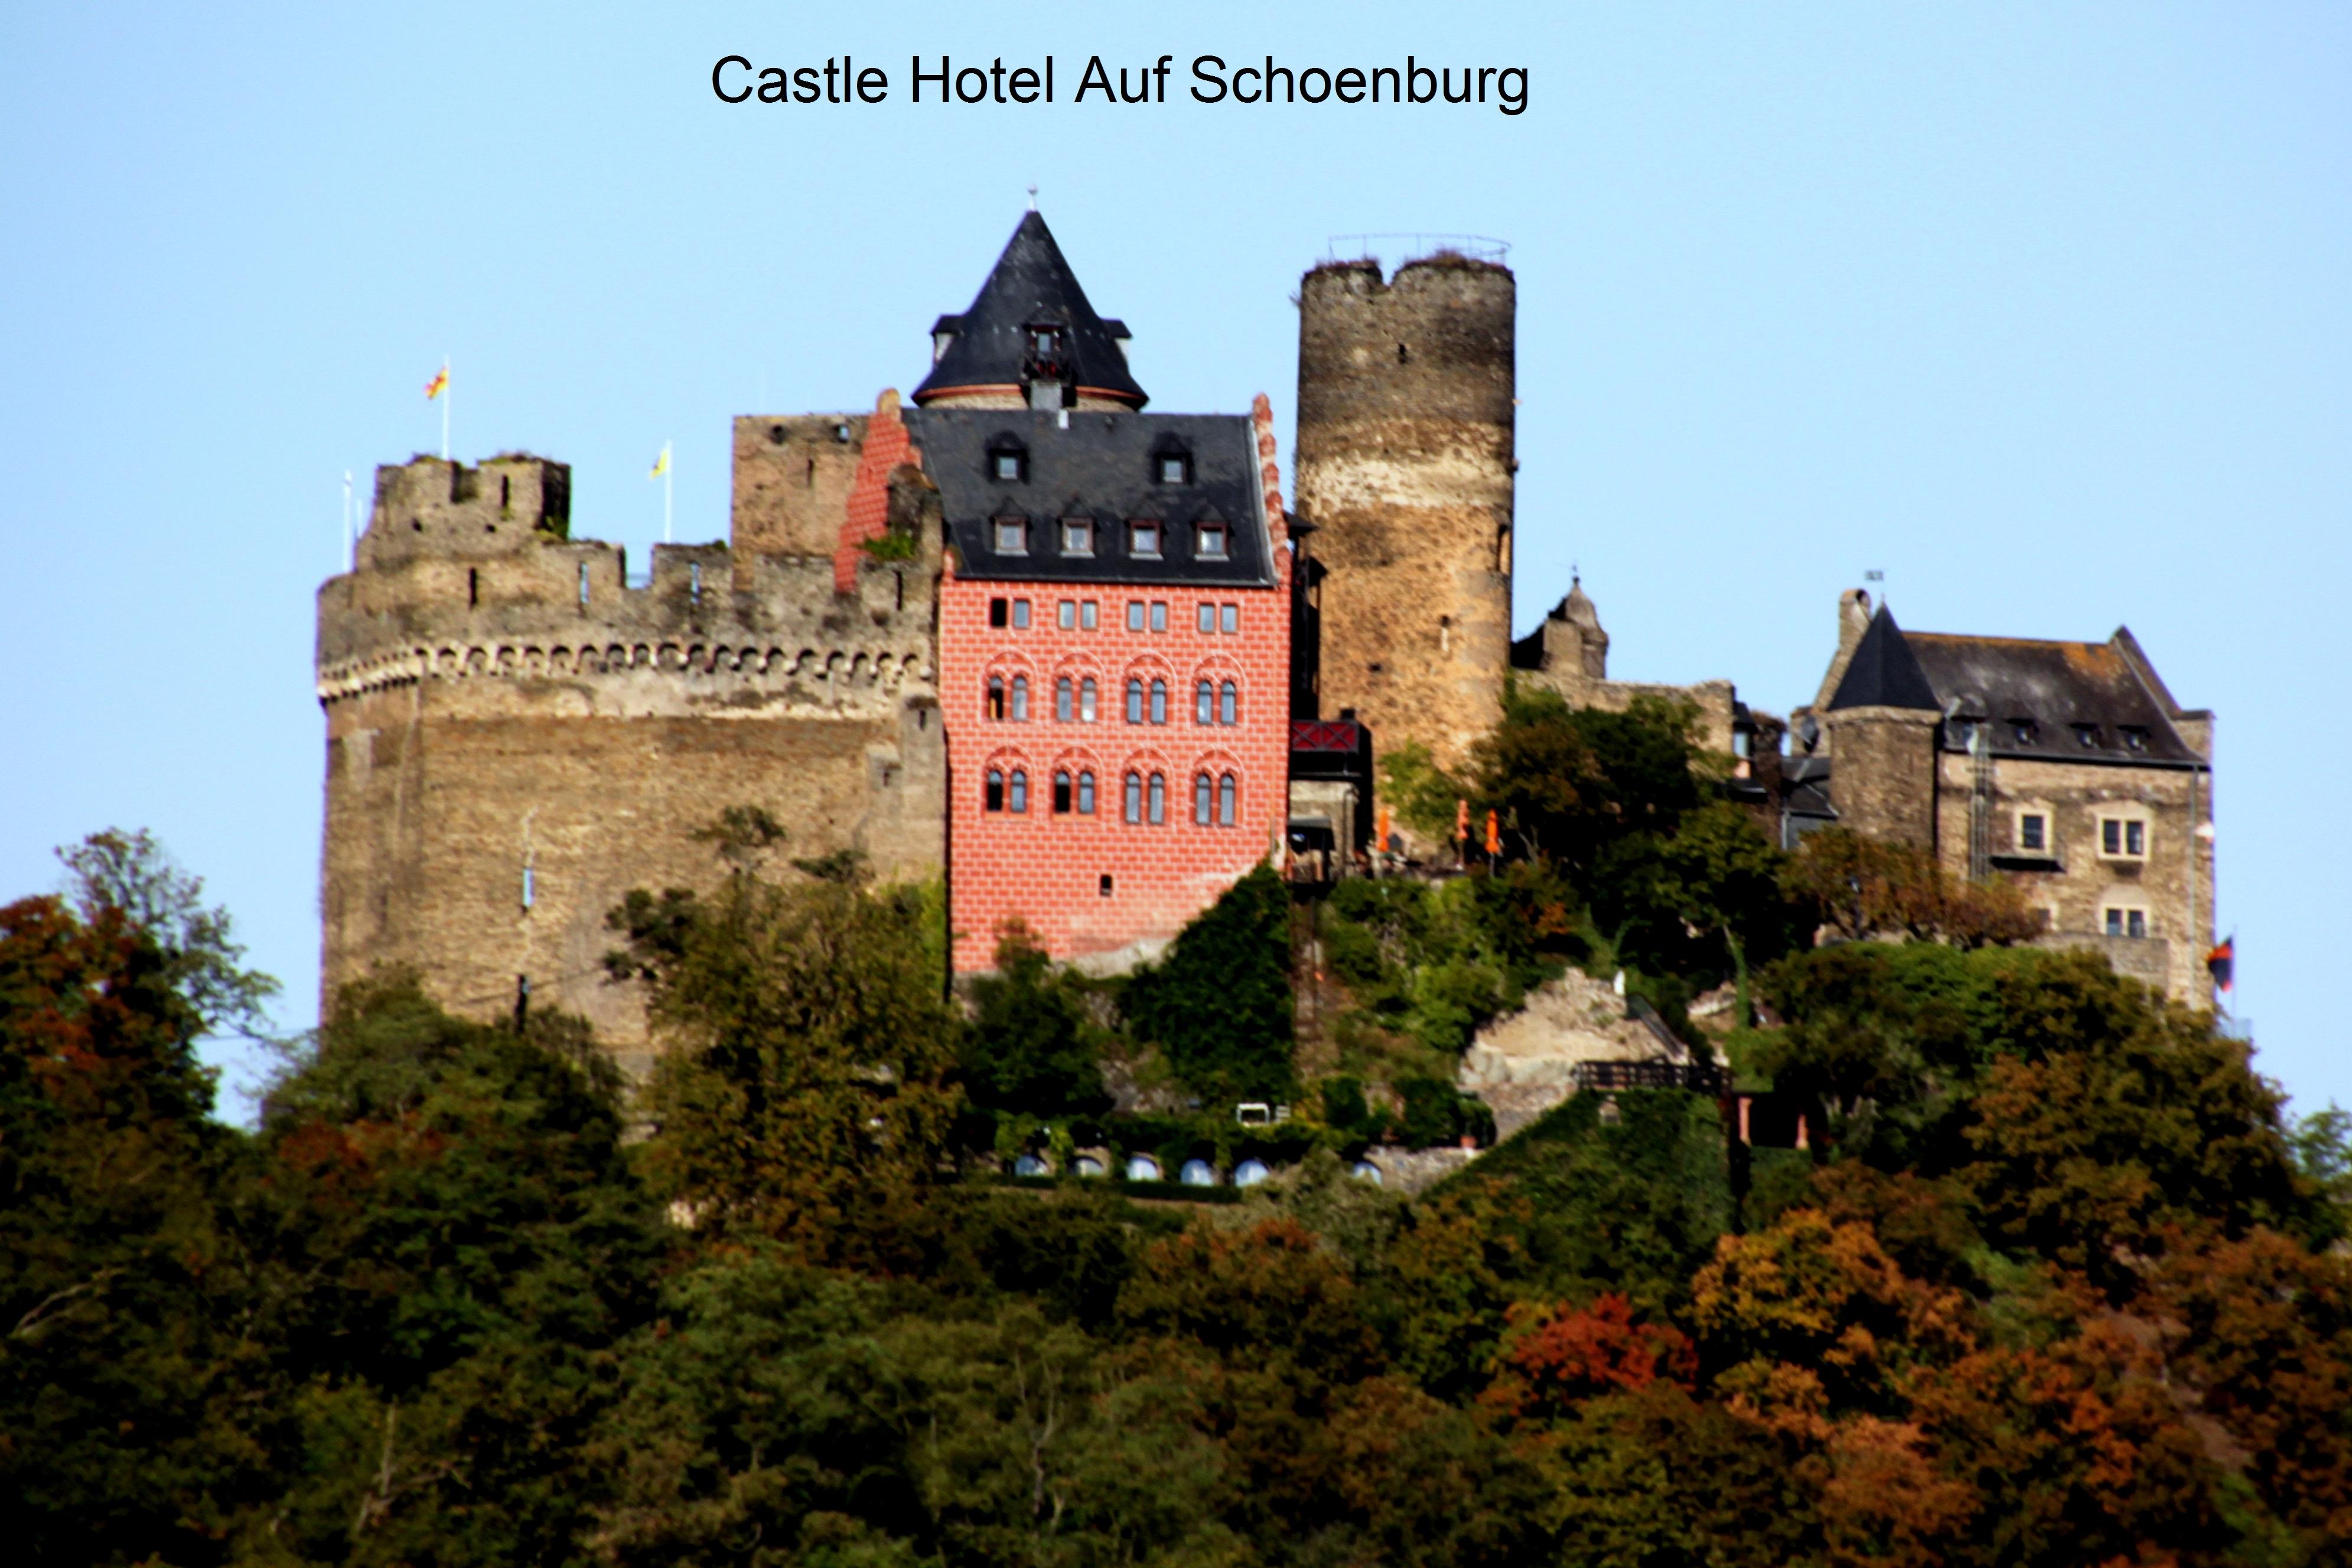 Castles along the Rhine River Gorge Click here for more pictures.